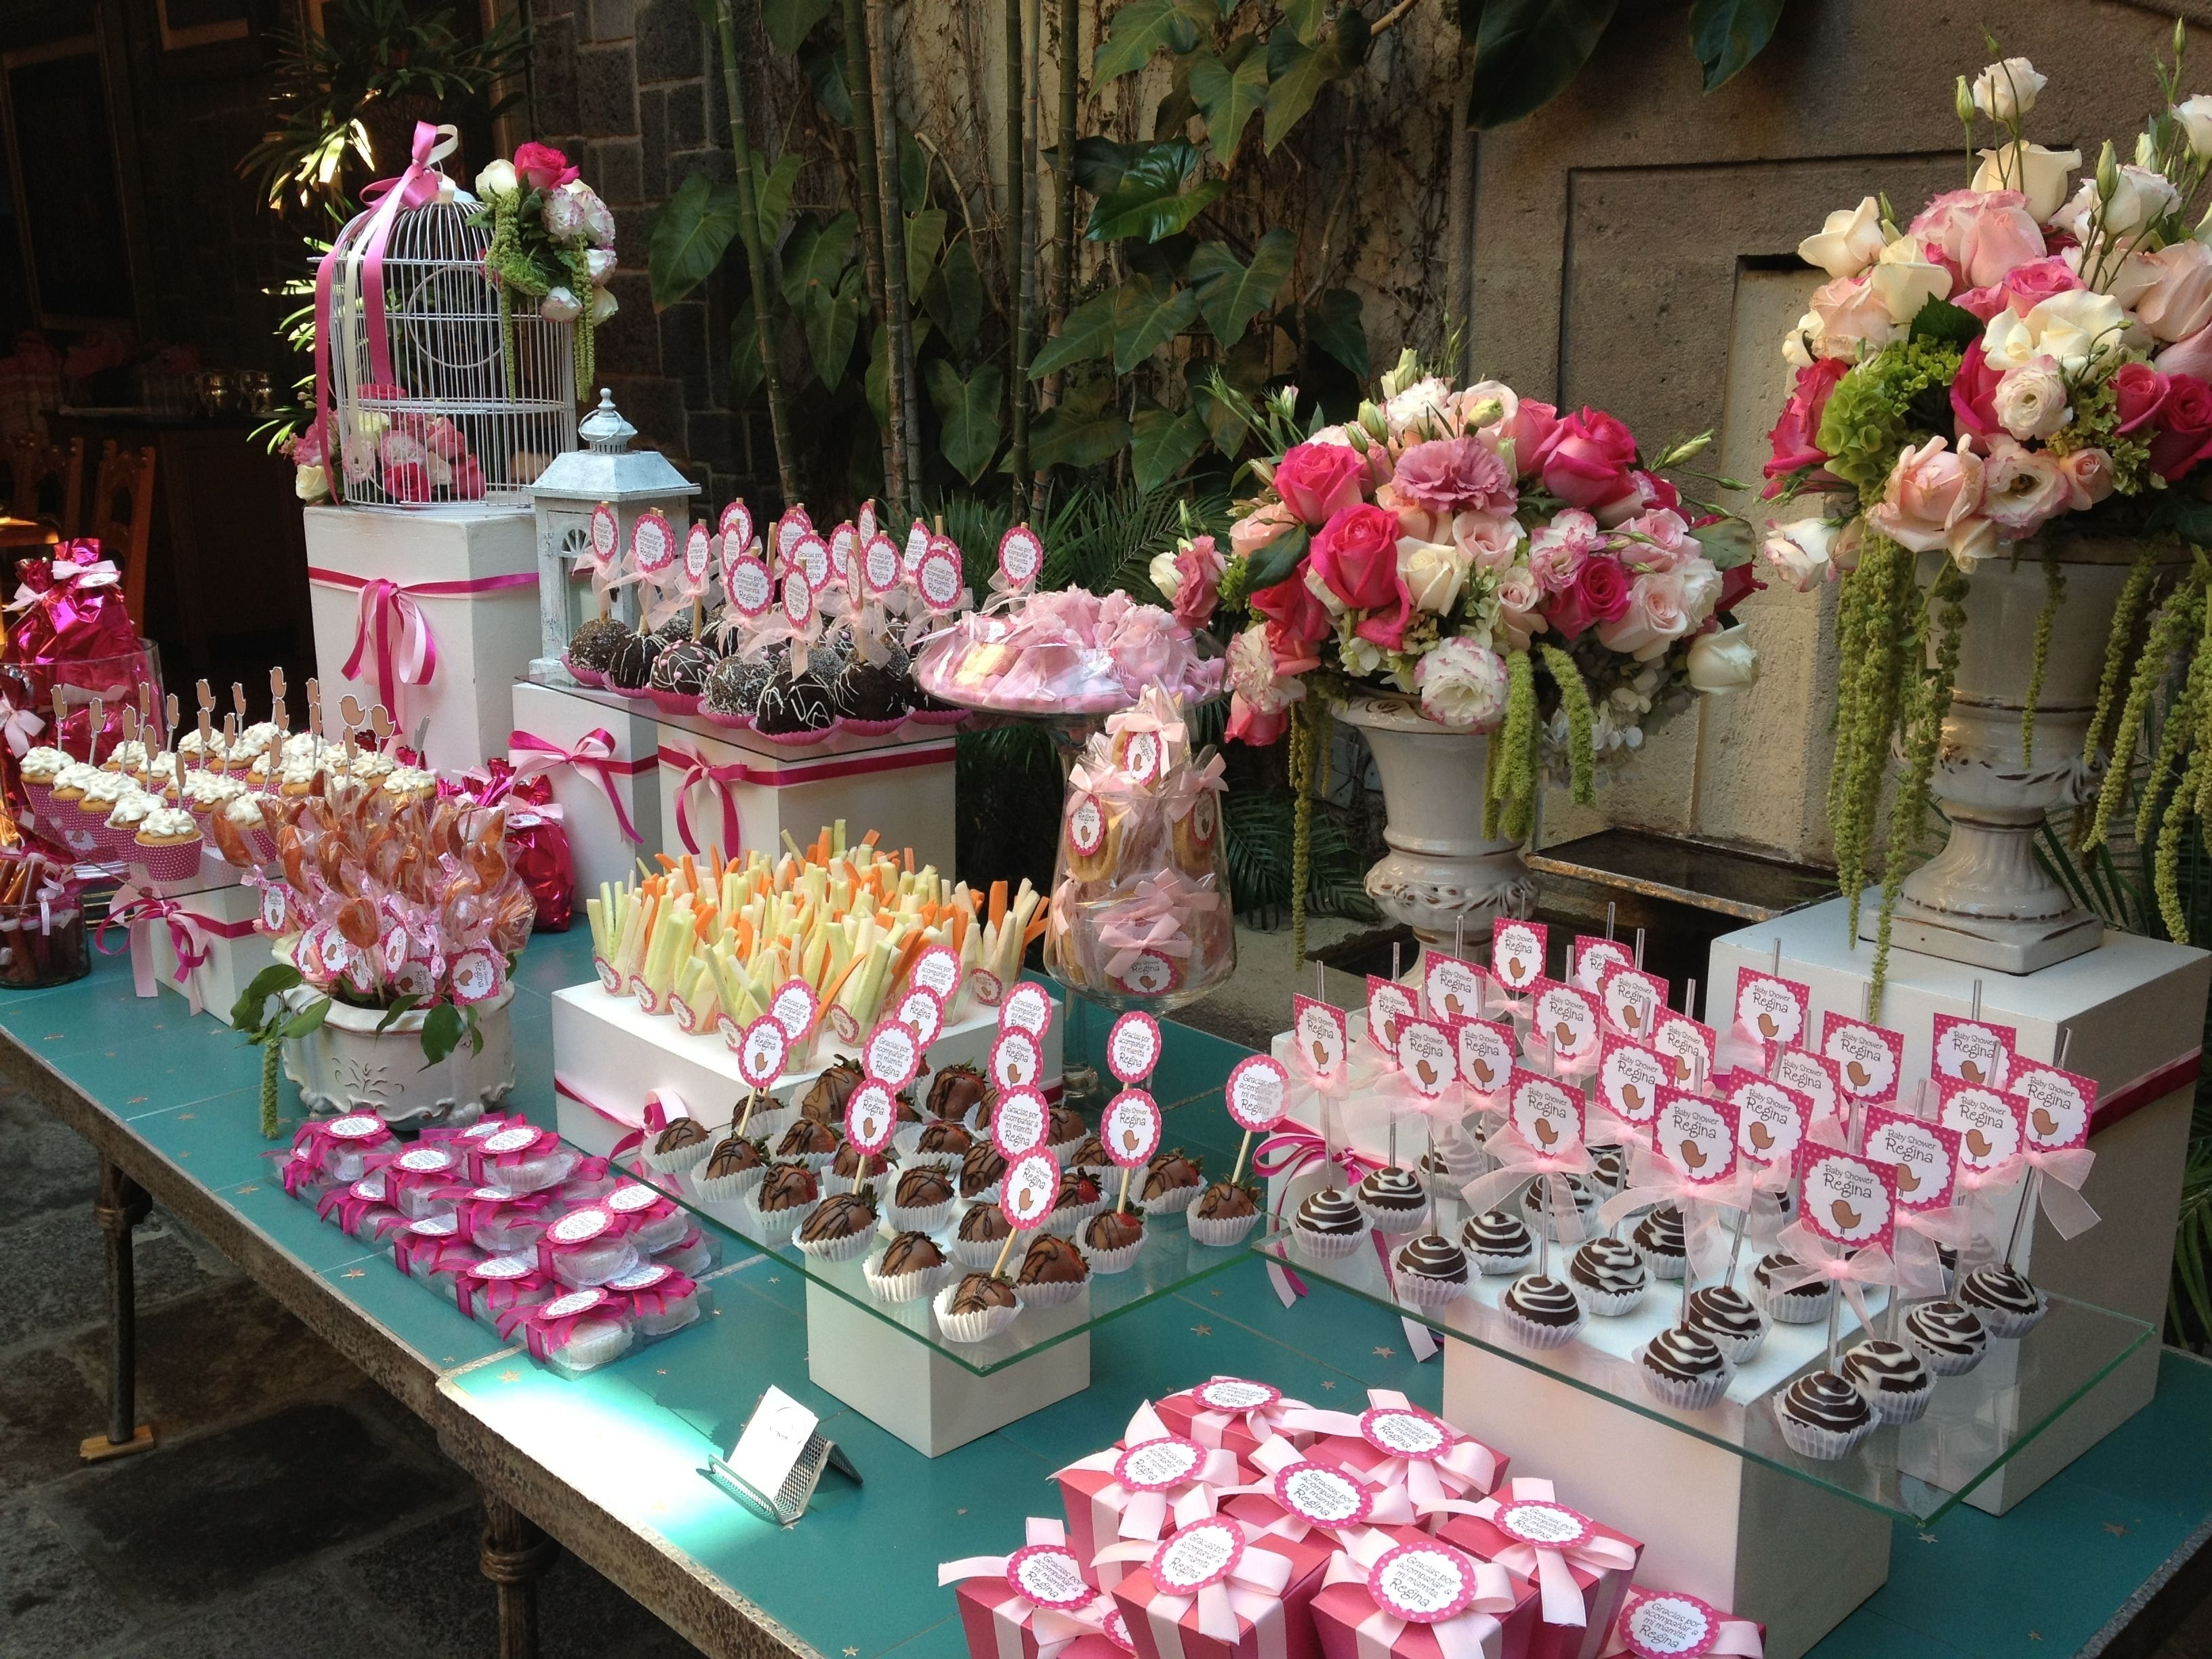 10 Gorgeous Ideas For Centerpieces For Baby Shower baby shower girl babyshower party baby shower ideas pinterest 2 2021